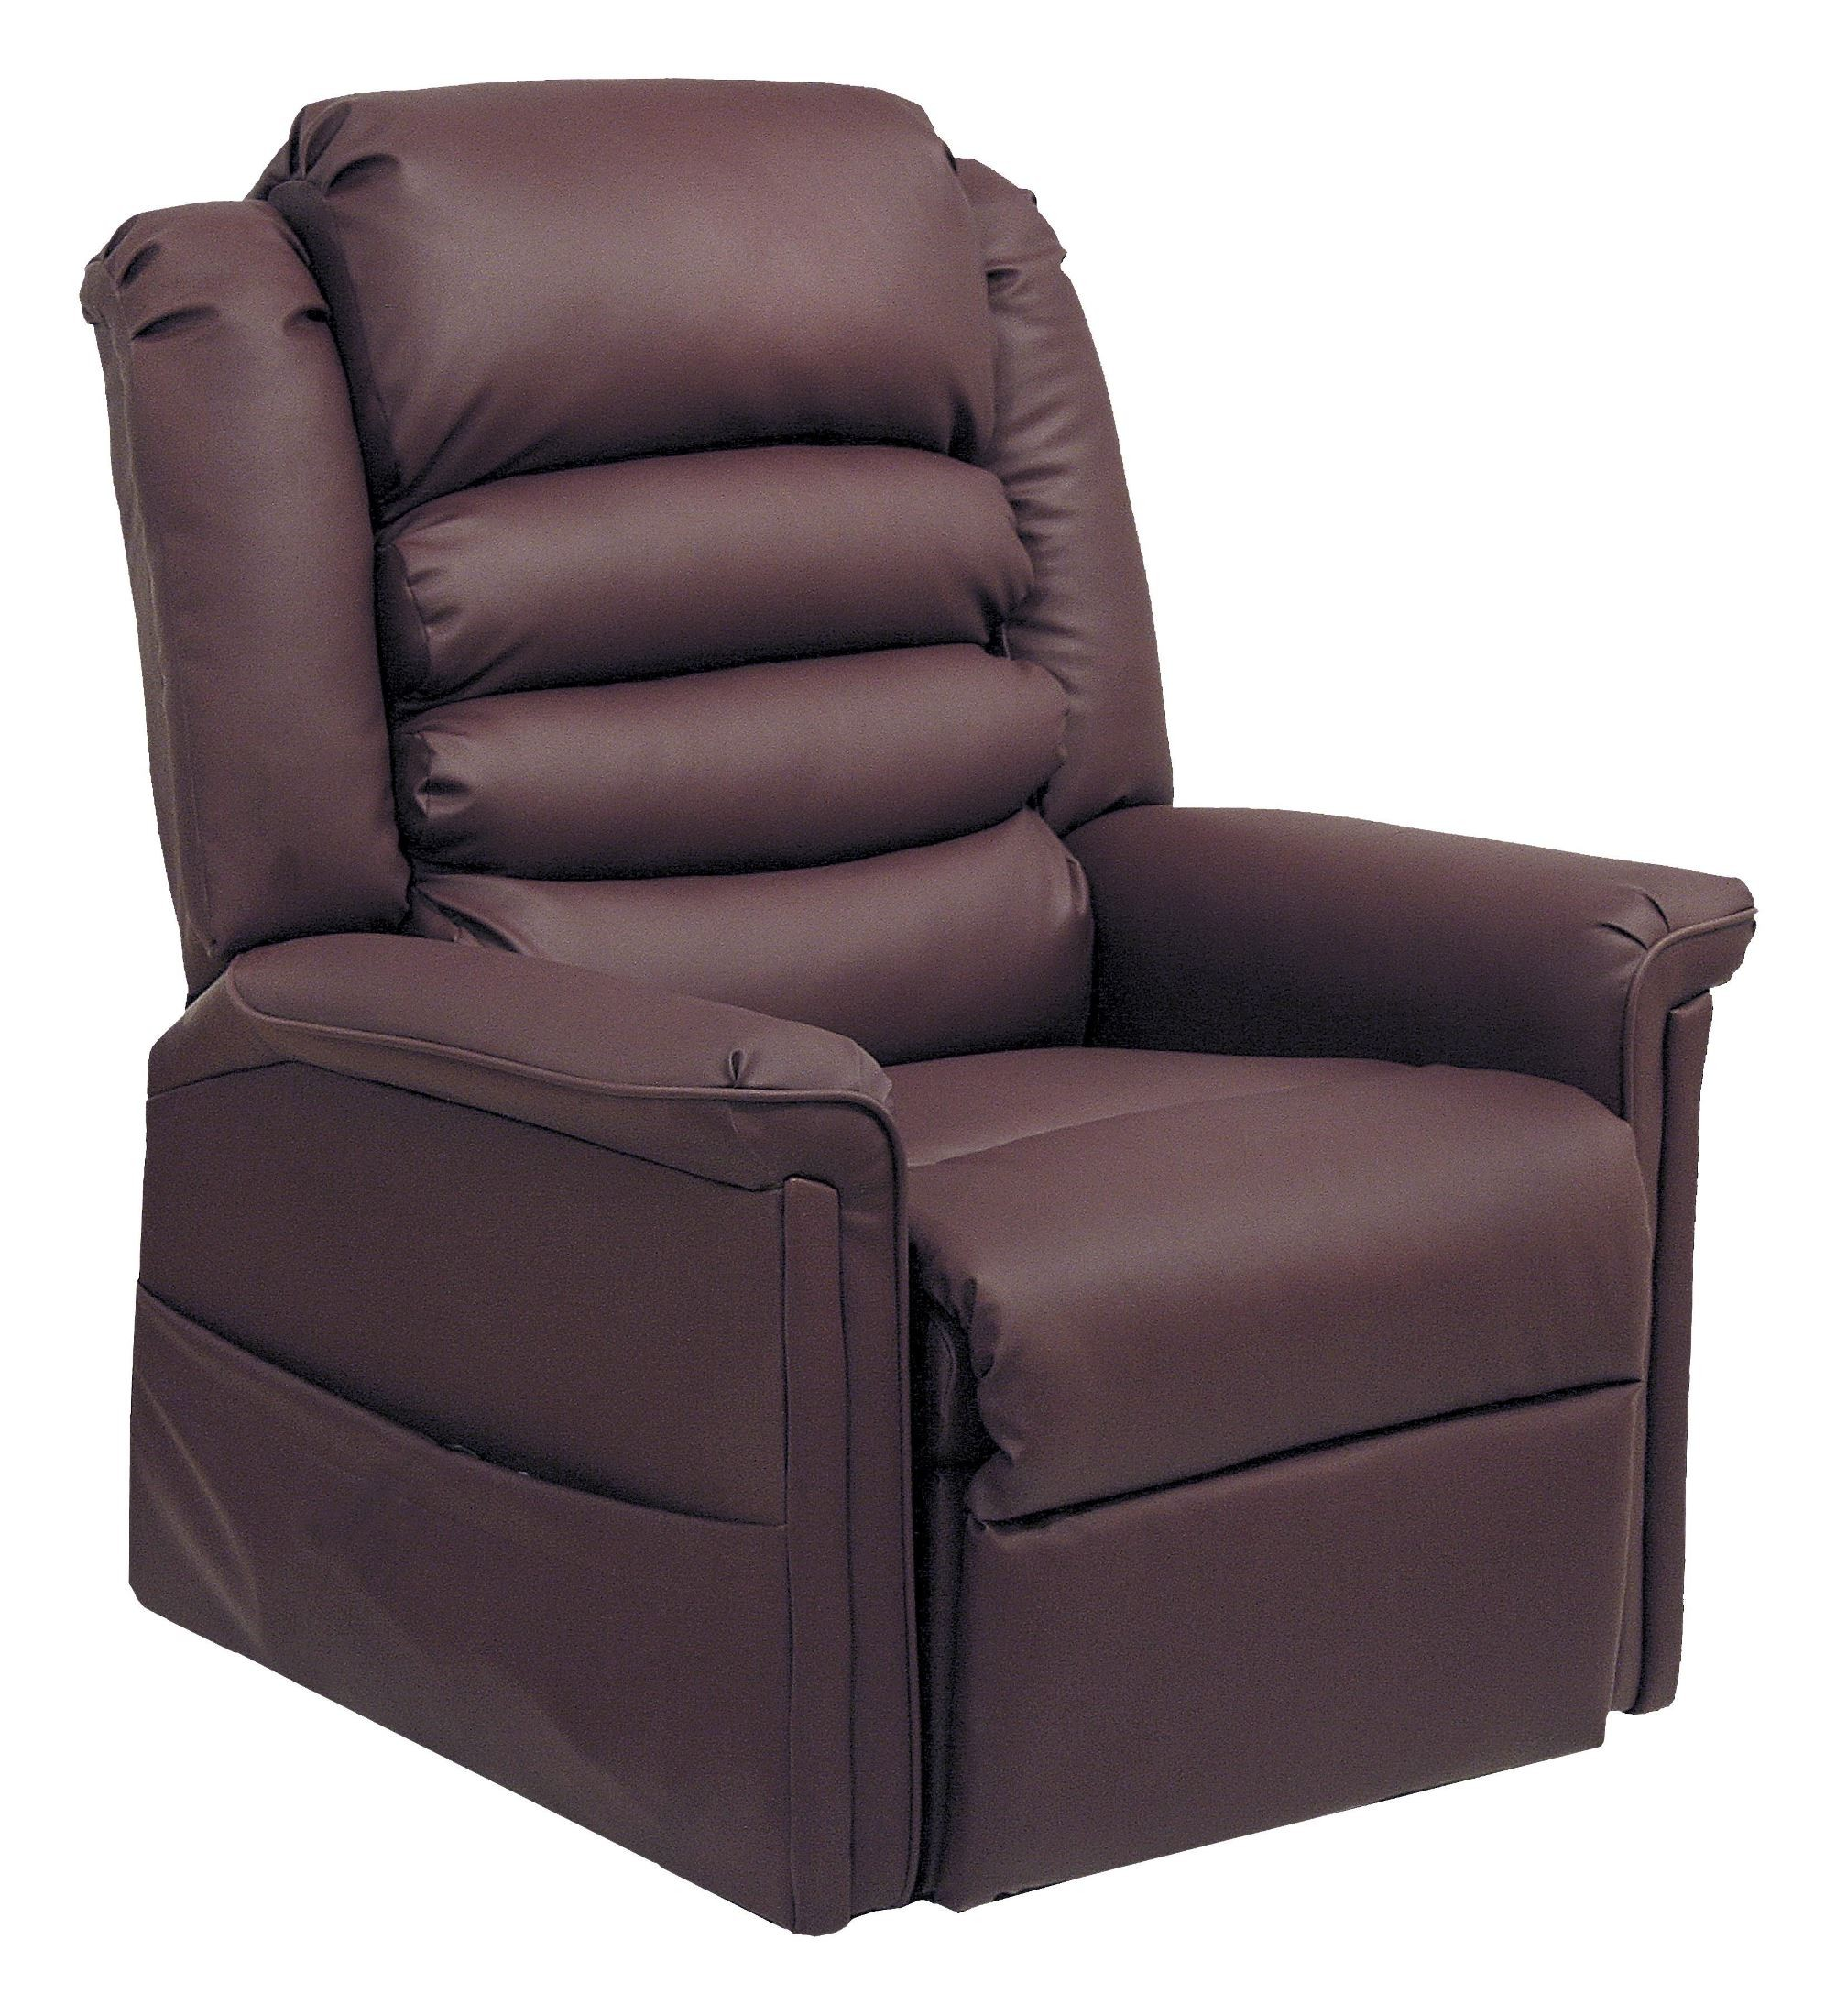 Invincible cabernet power lift recliner from catnapper for Catnapper cloud nine chaise recliner